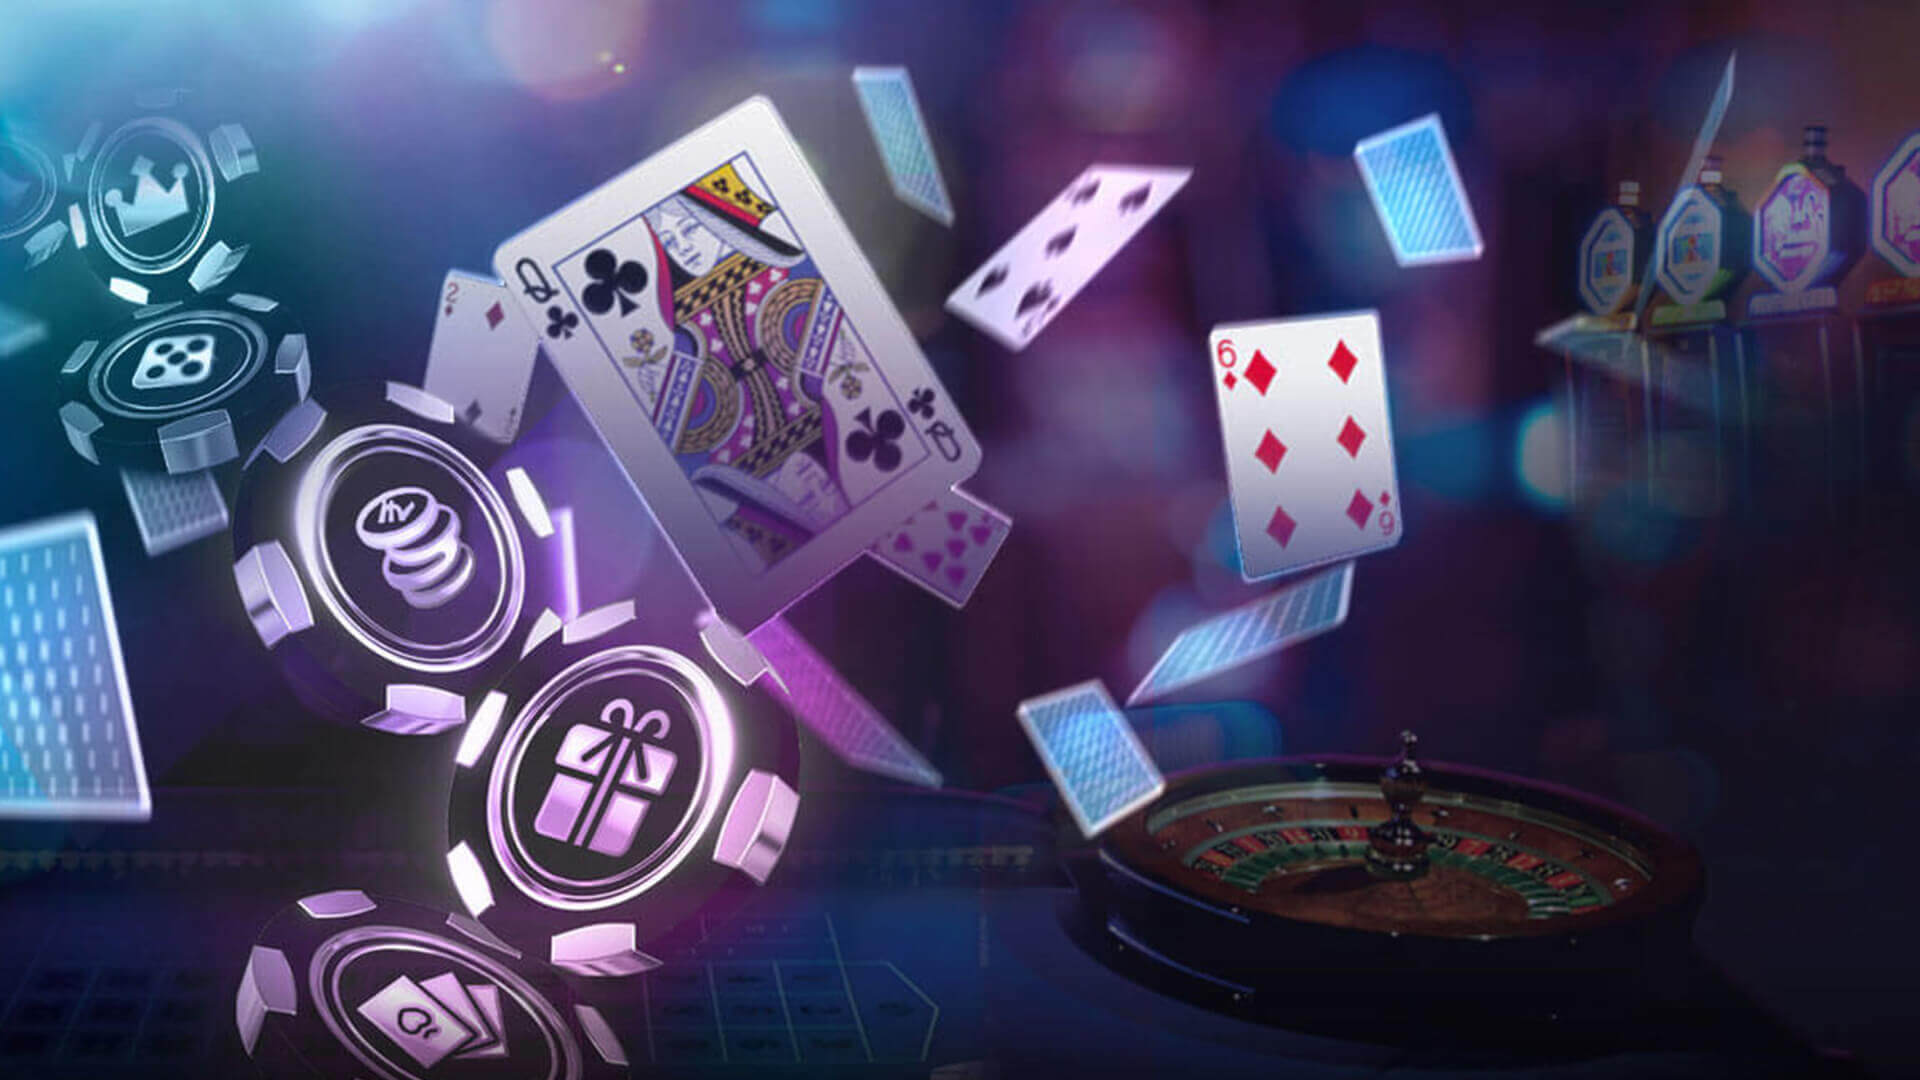 In 10 Minutes, I Will Offer You The Reality About Casino